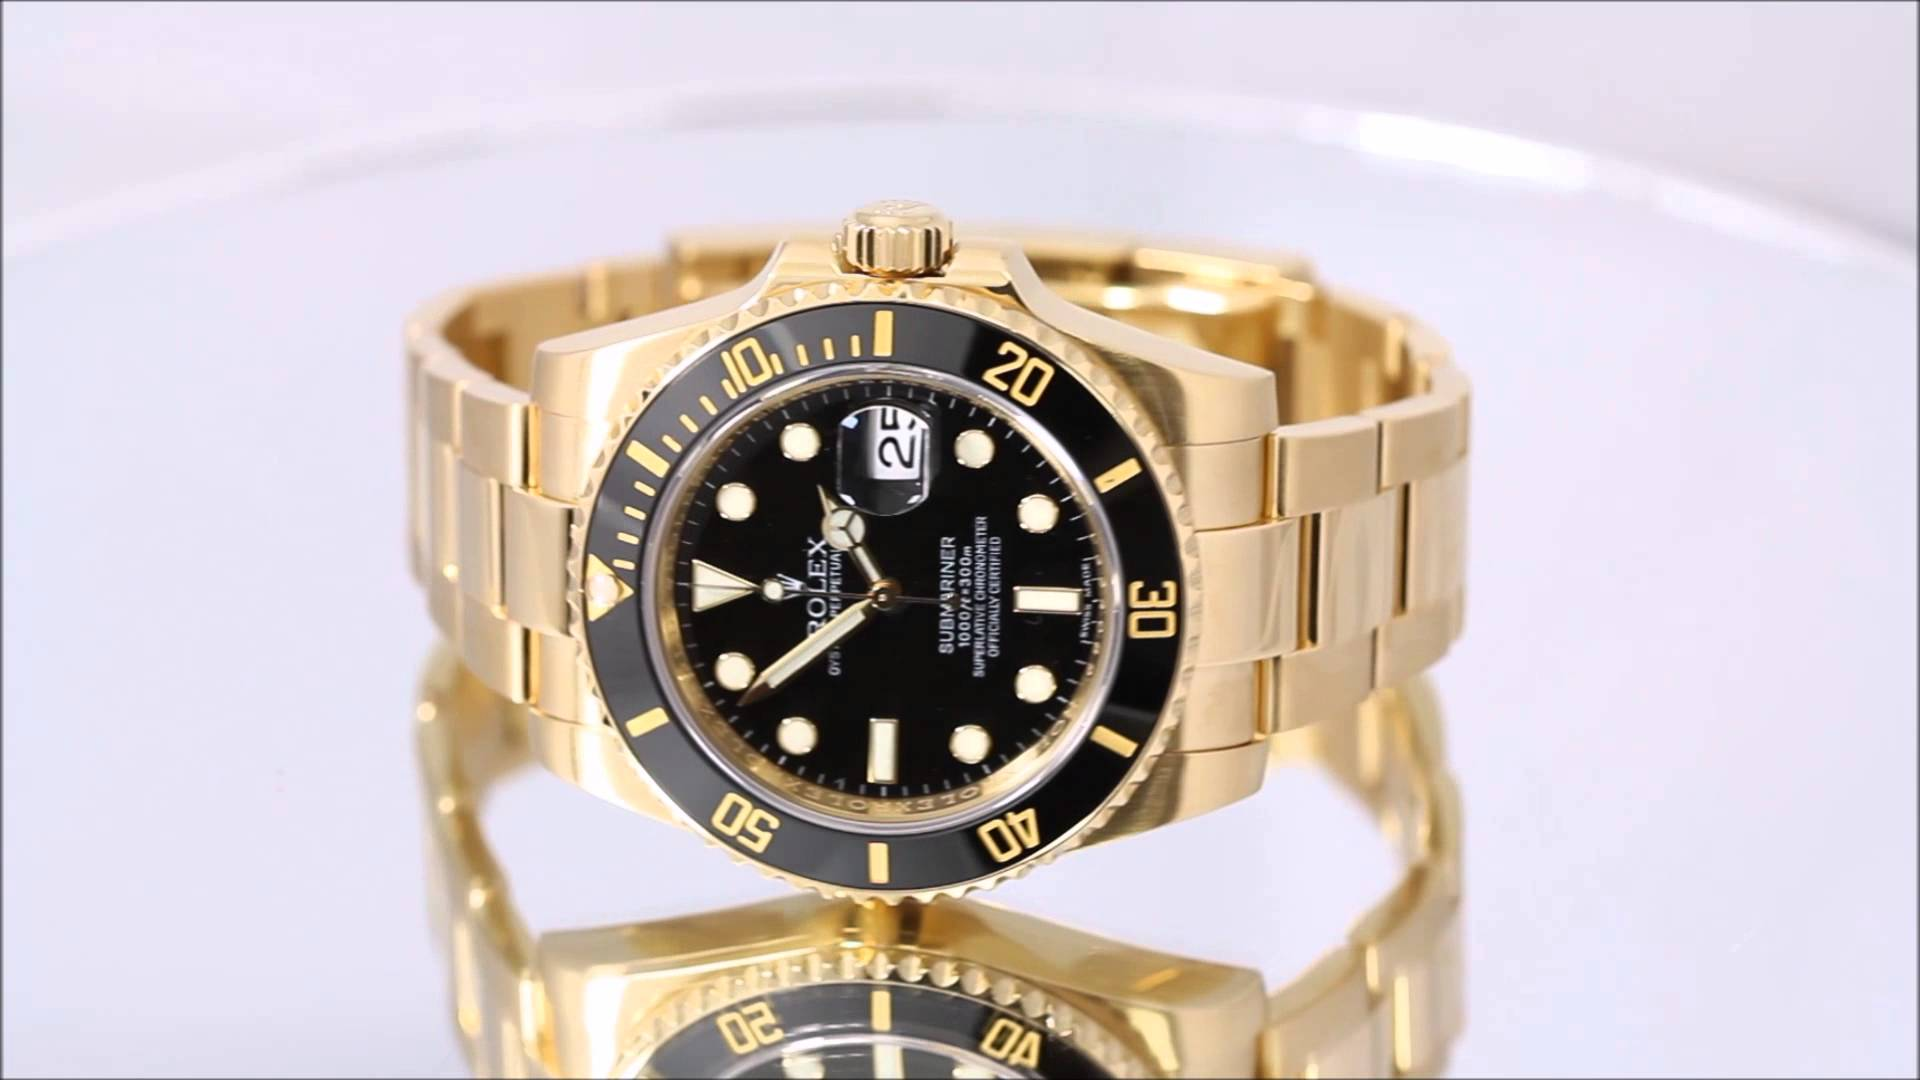 Rolex watch Submariner Gold Fake Watch Review